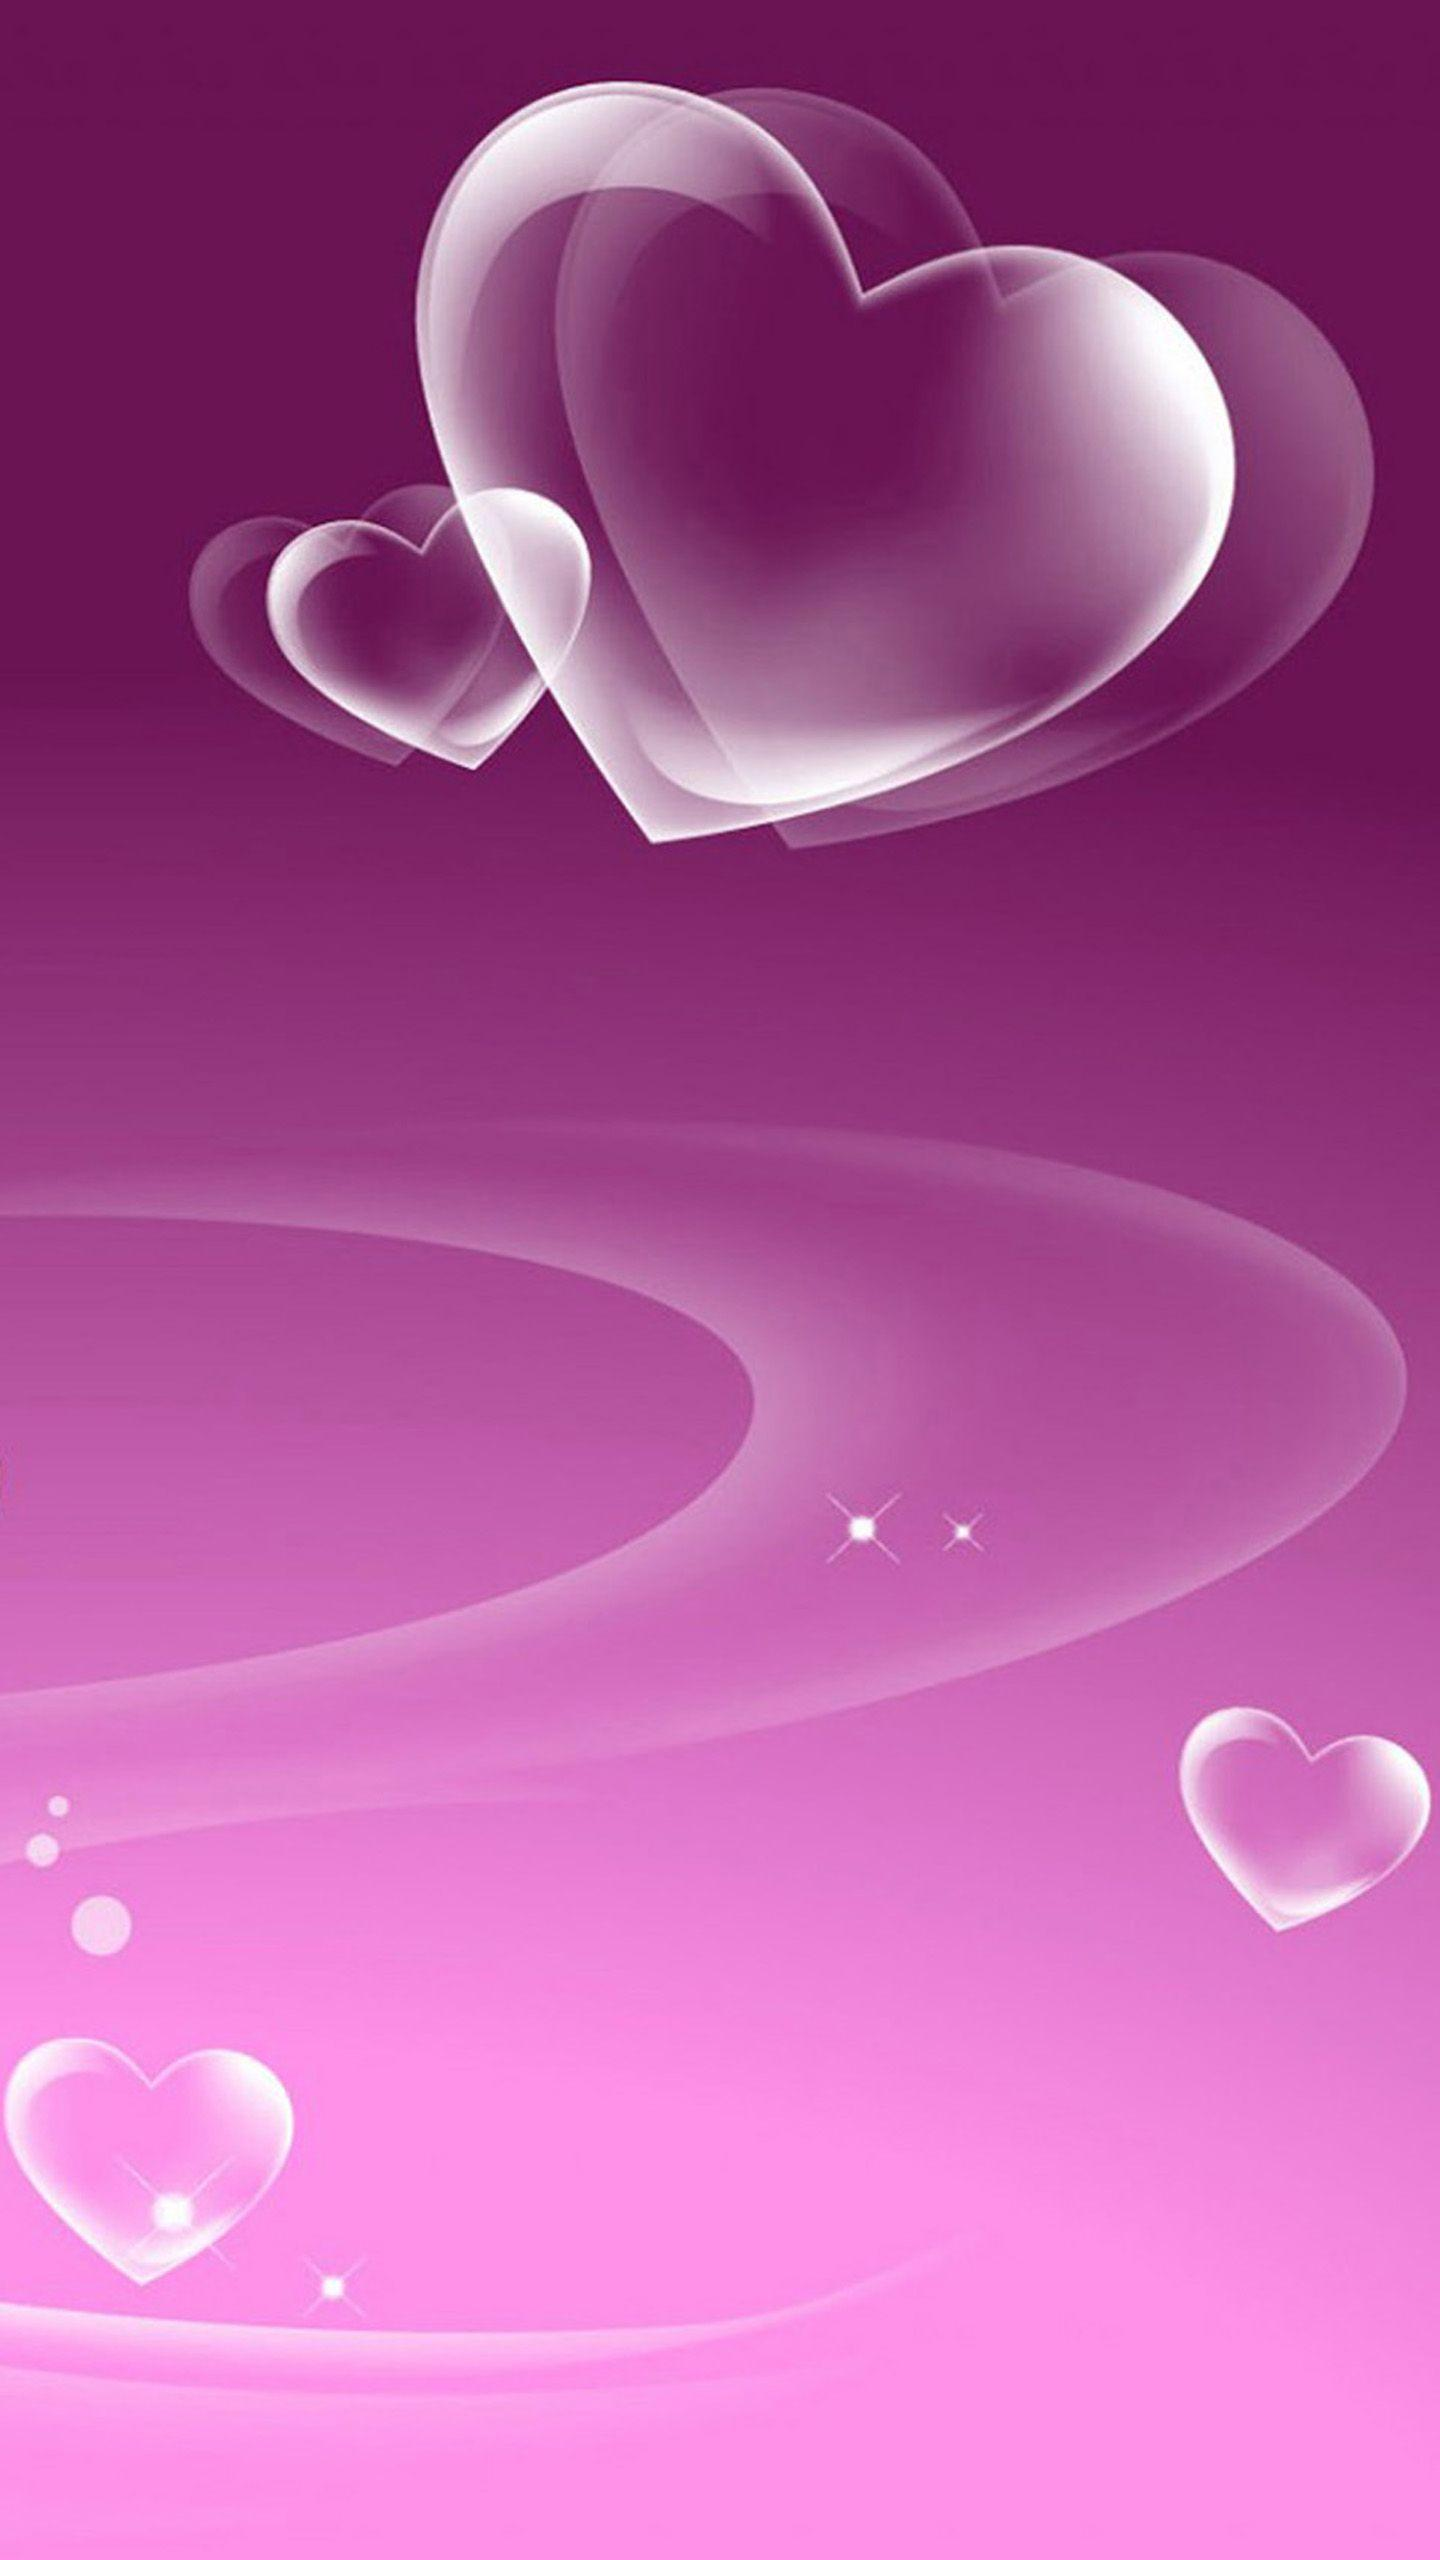 Galaxy Love Wallpapers Wallpaper Cave